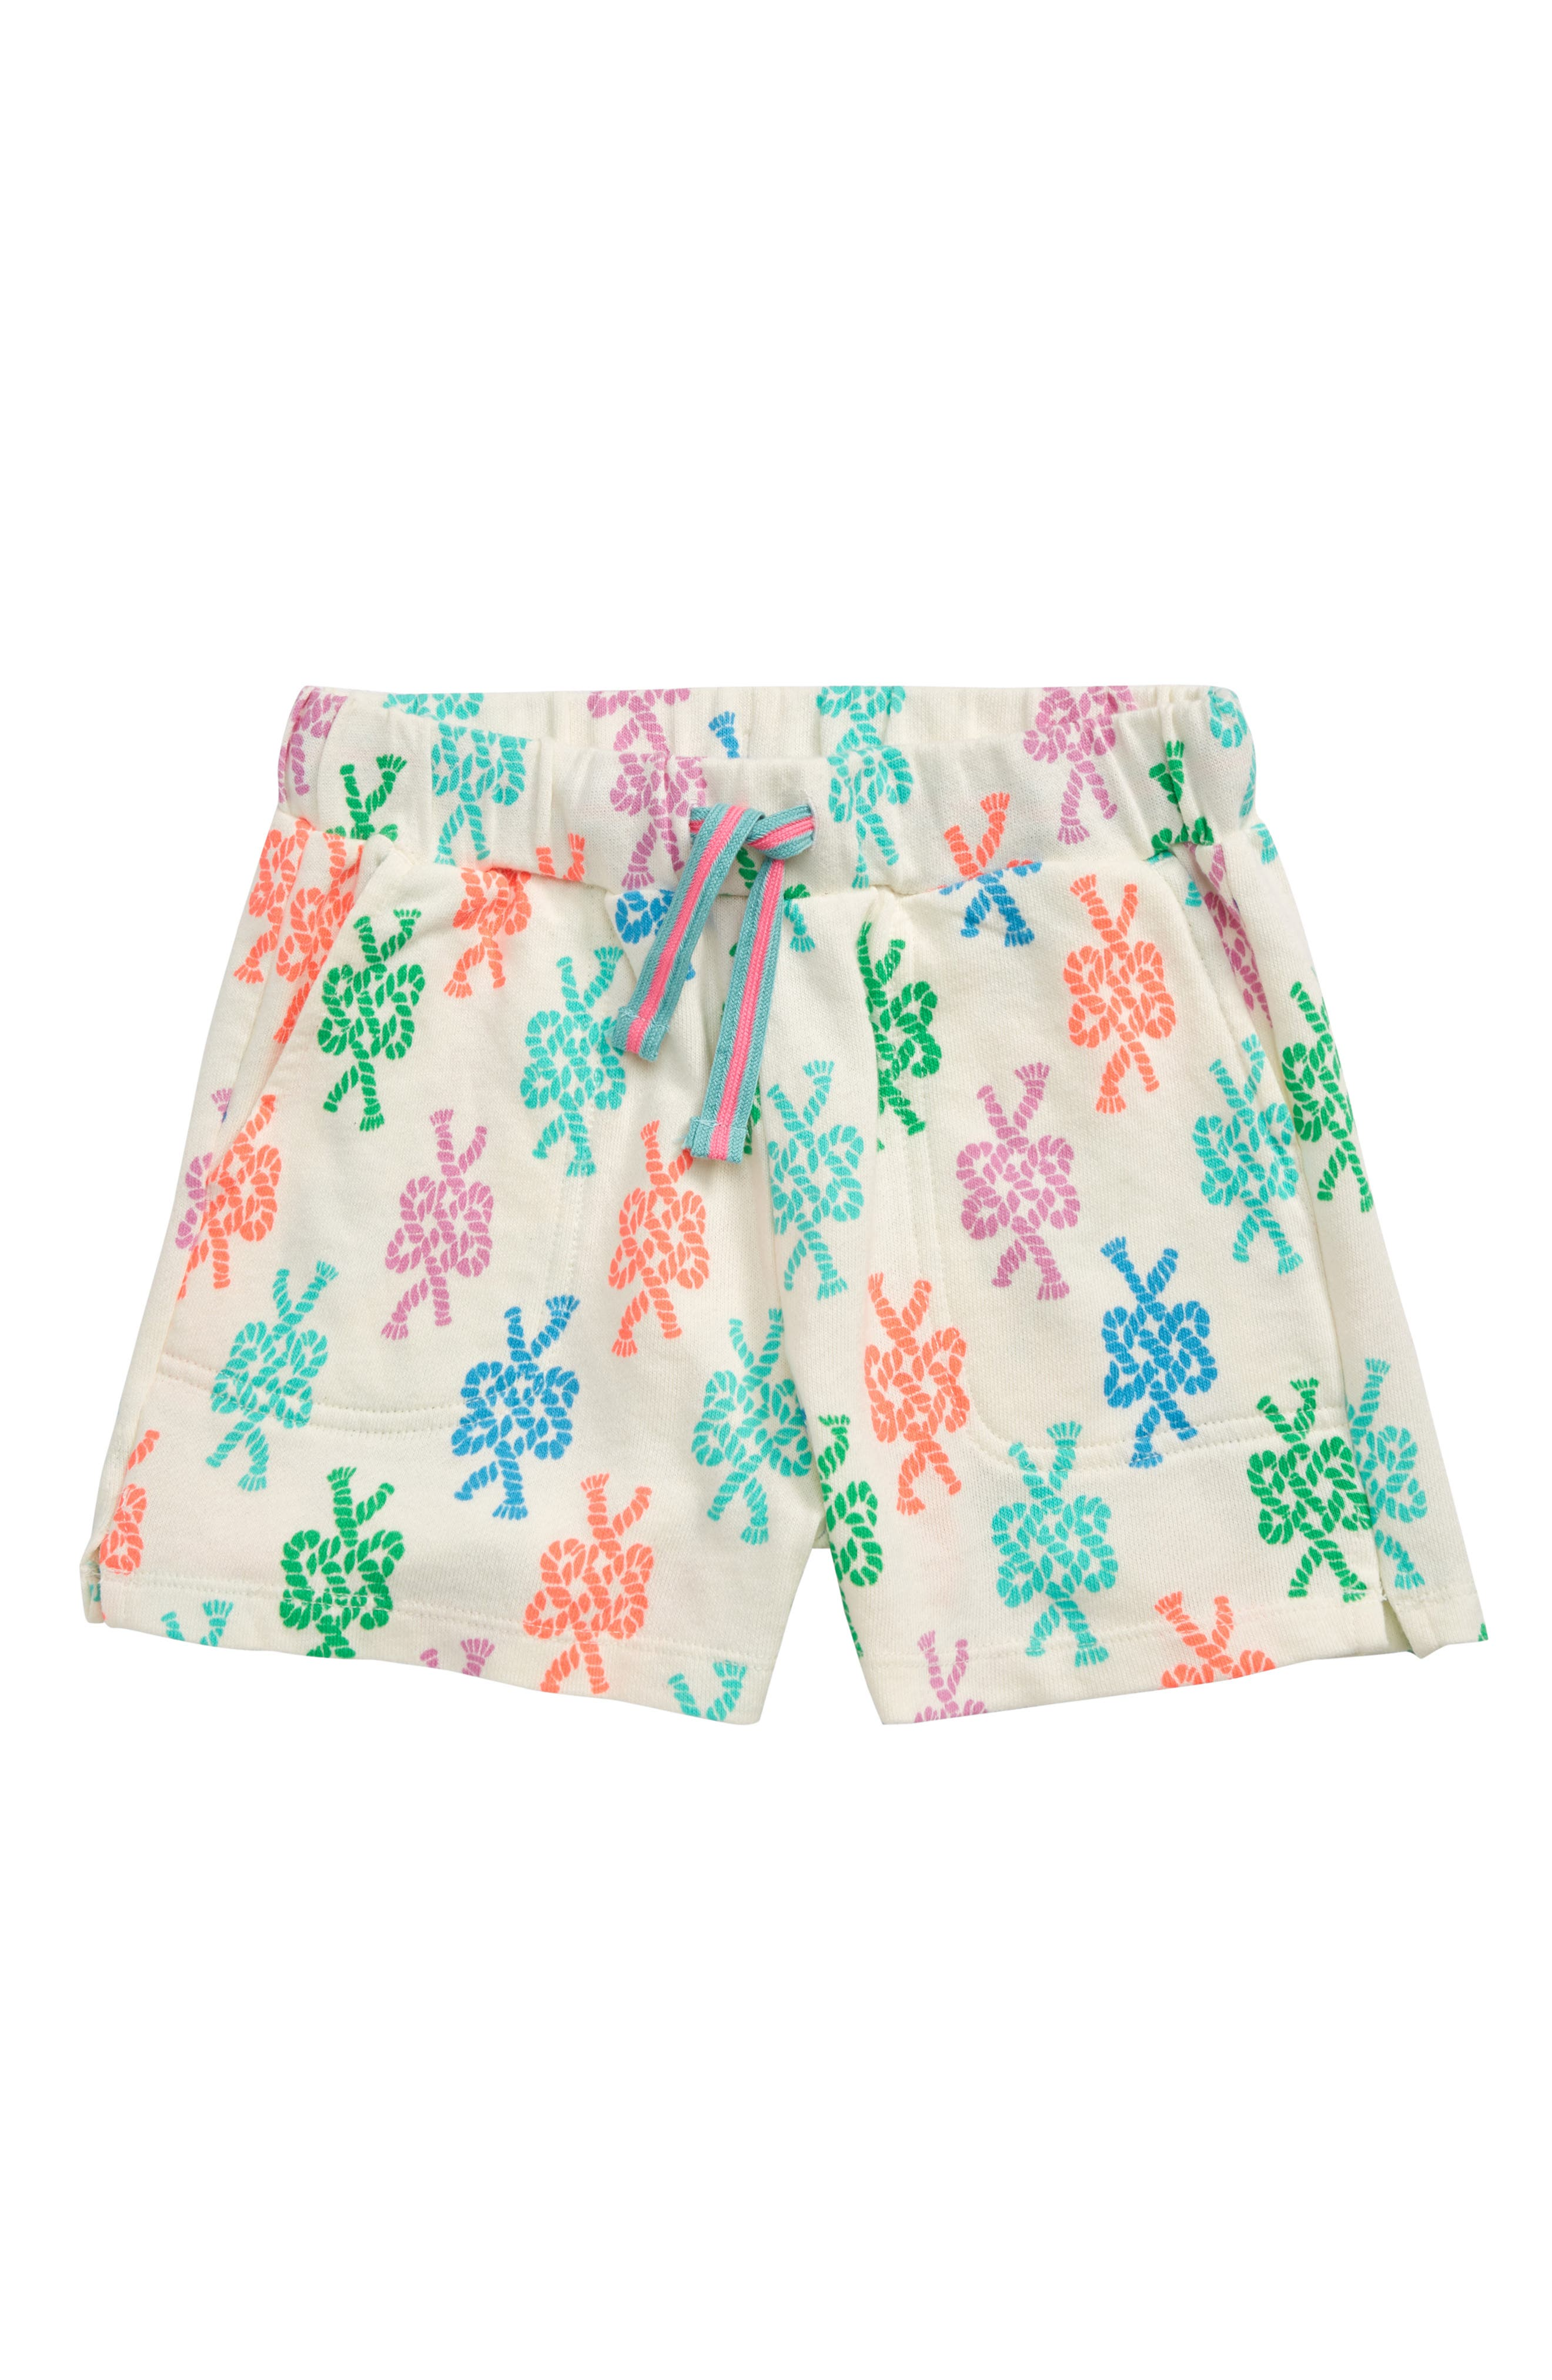 Toddler Girls Crewcuts By Jcrew Sailors Knots Terry Shorts Size 2T  Ivory